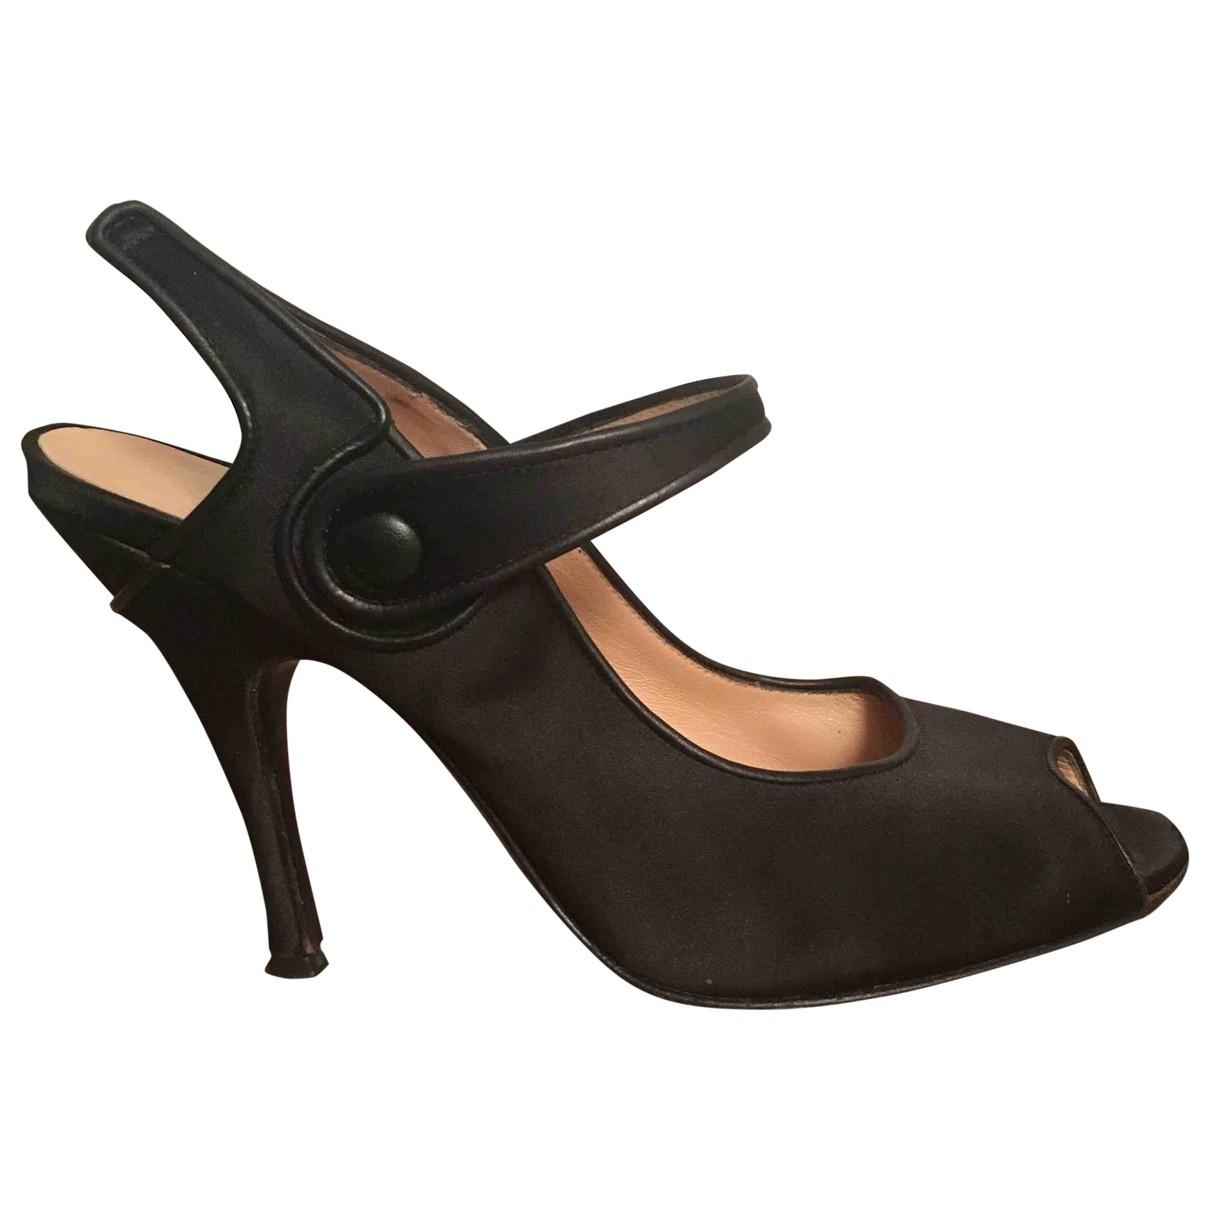 D&g \N Black Leather Heels for Women 38.5 EU